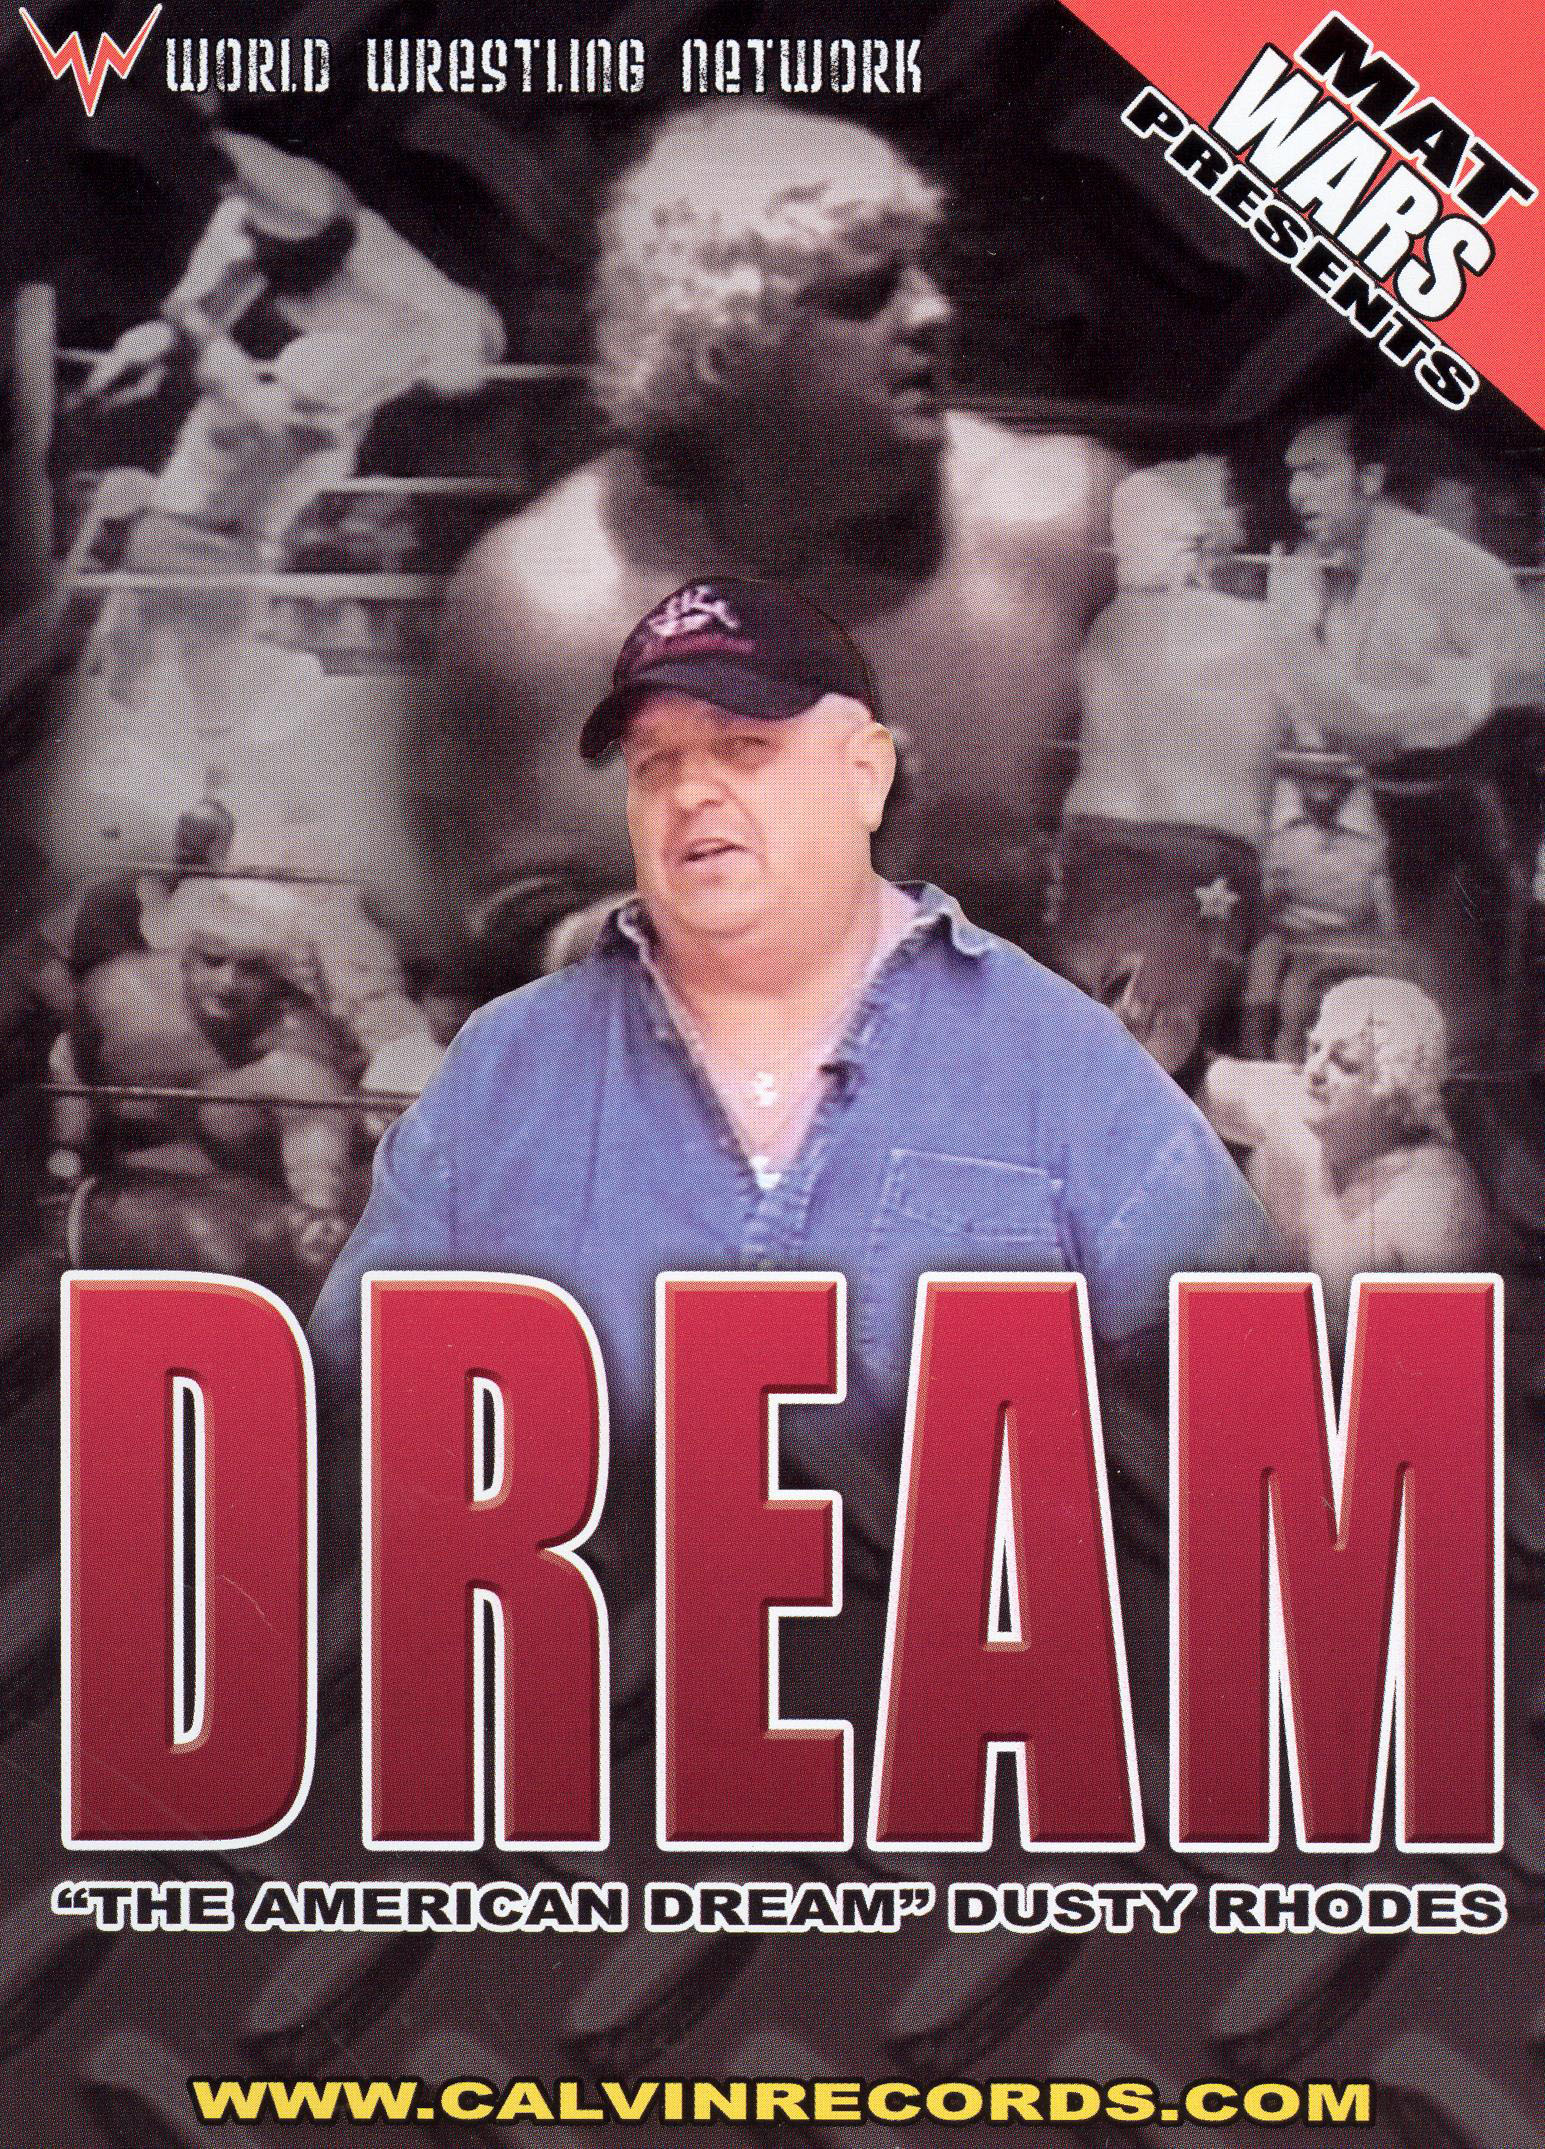 Mat Wars Presents: American Dream Dusty Rhodes